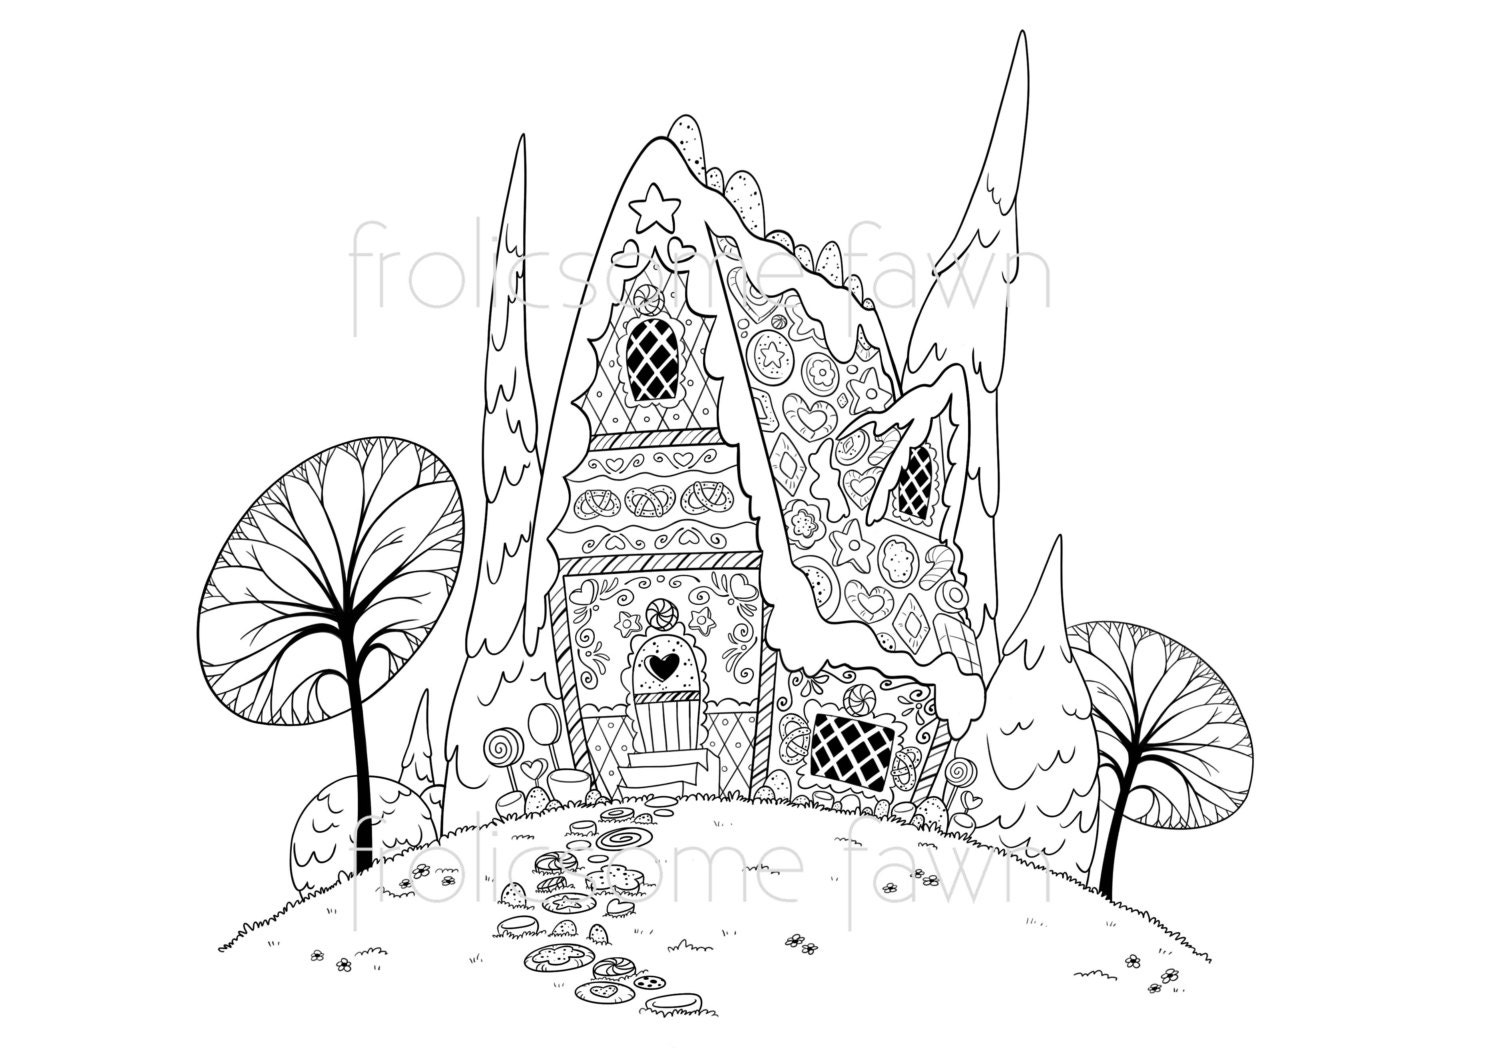 fairy tale coloring page for adults and children by frolicsomefawn. Black Bedroom Furniture Sets. Home Design Ideas